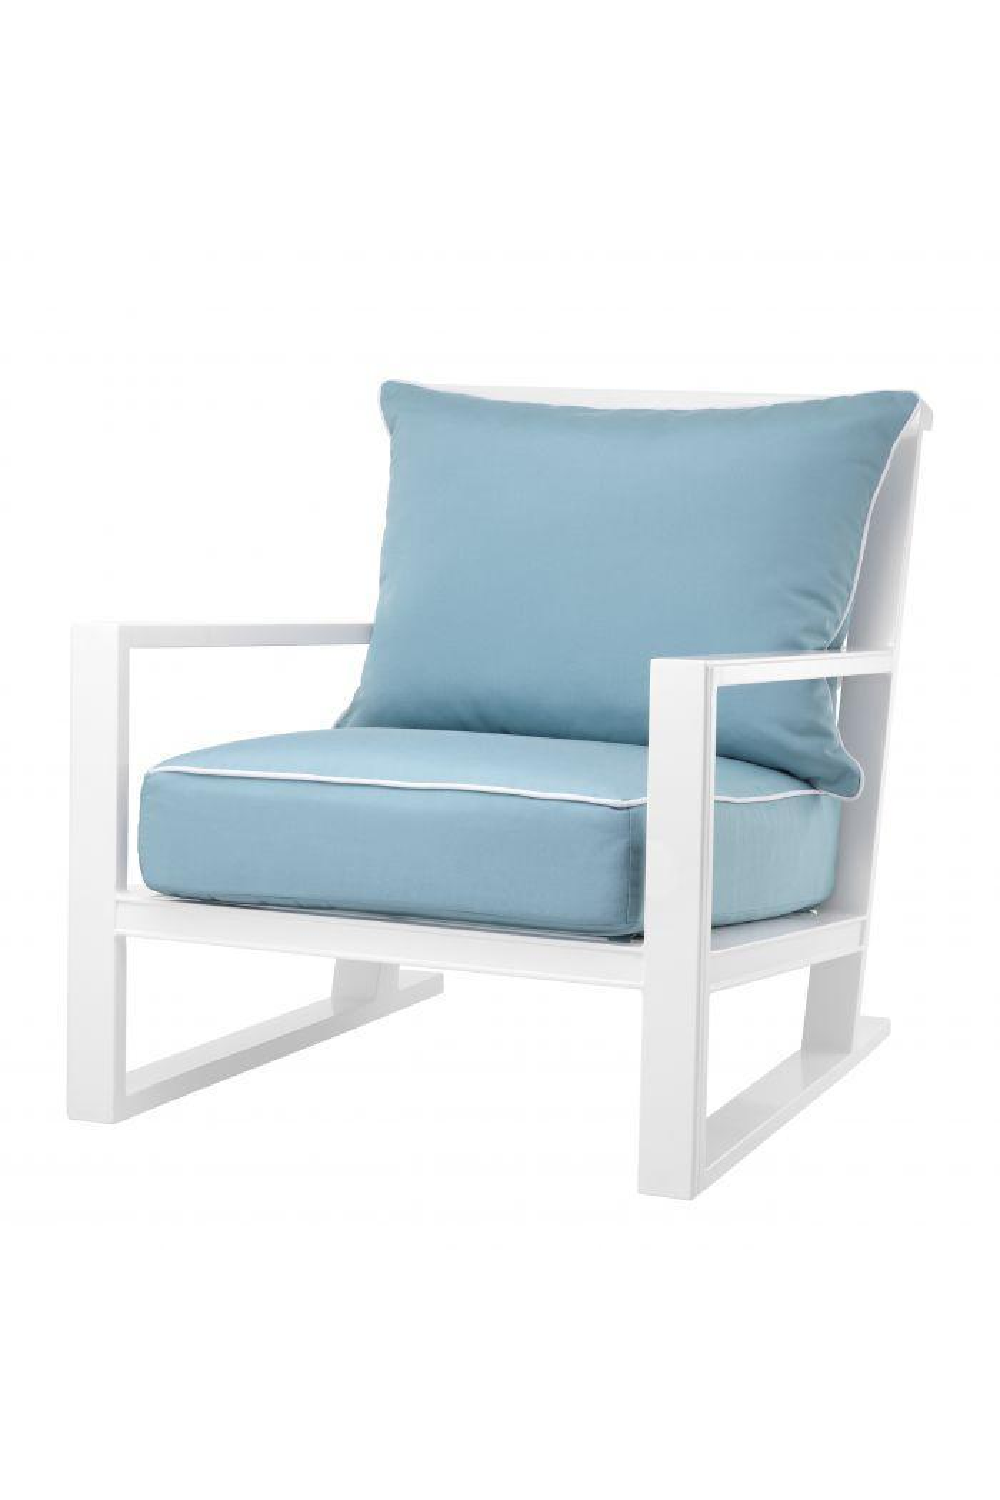 White Outdoor Sunbrella Lounge Chair | Eichholtz Como